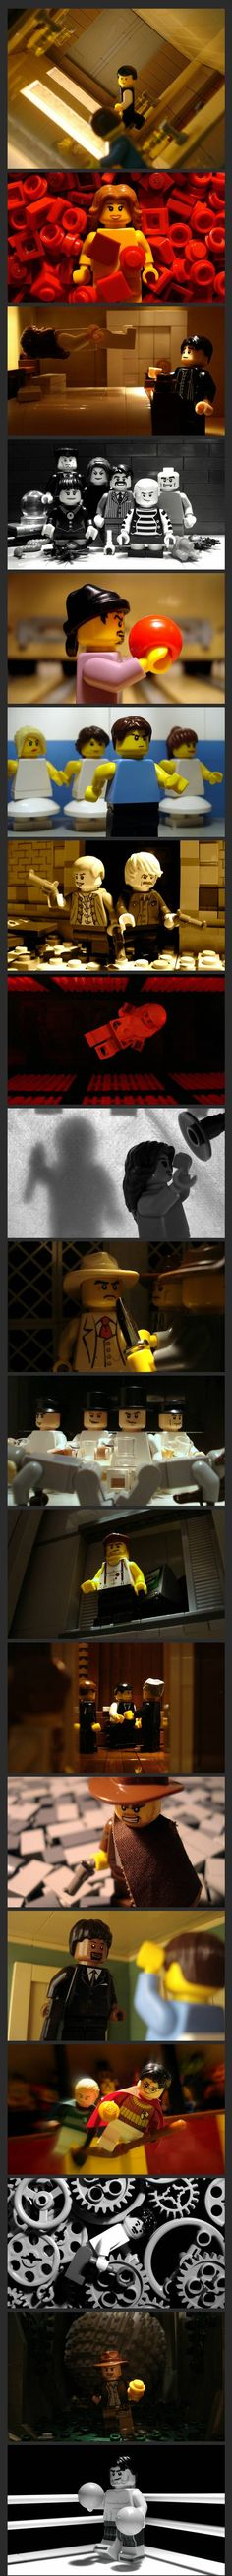 Lego movie scenes